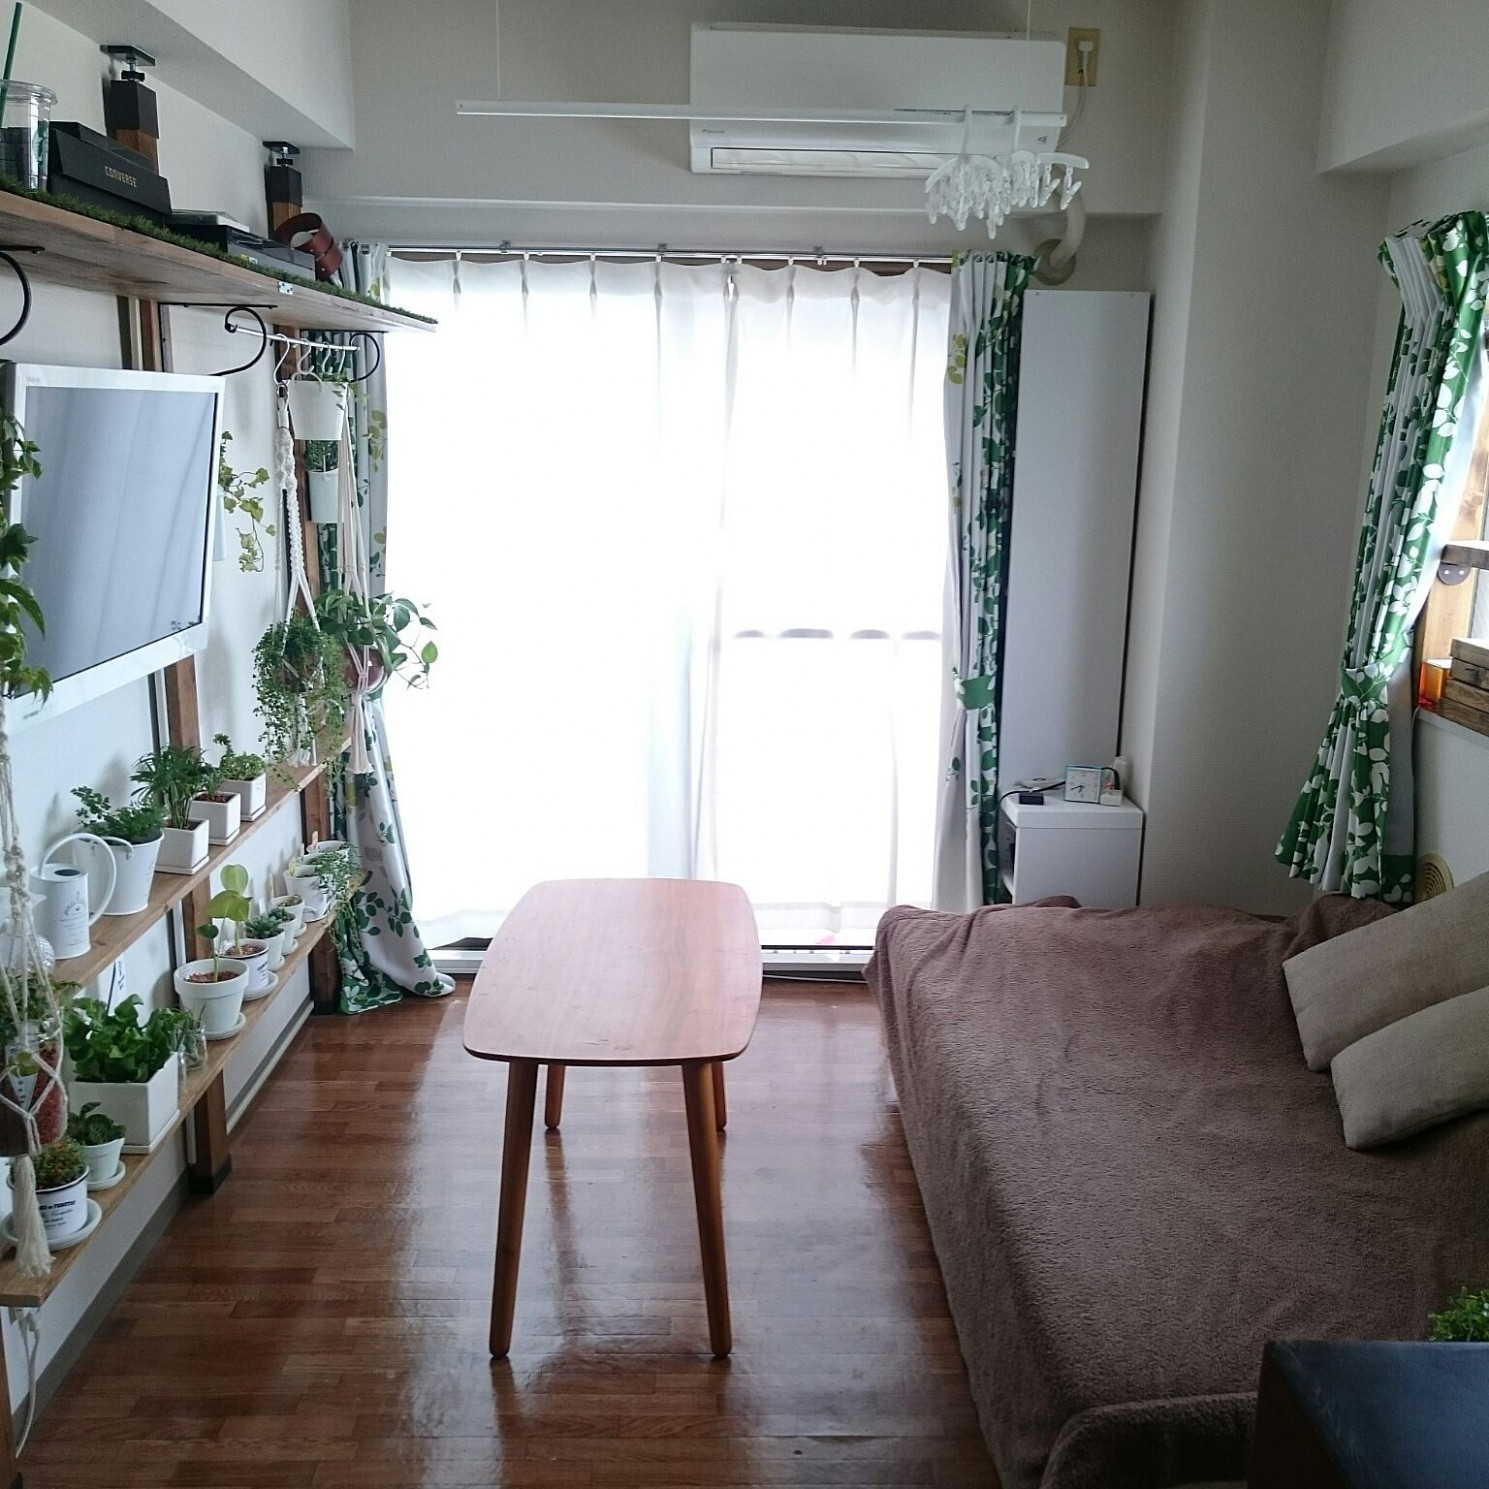 12 Simple Ideas for Decorating a Small Japanese Apartment - Blog - Small Apartment Japanese Design